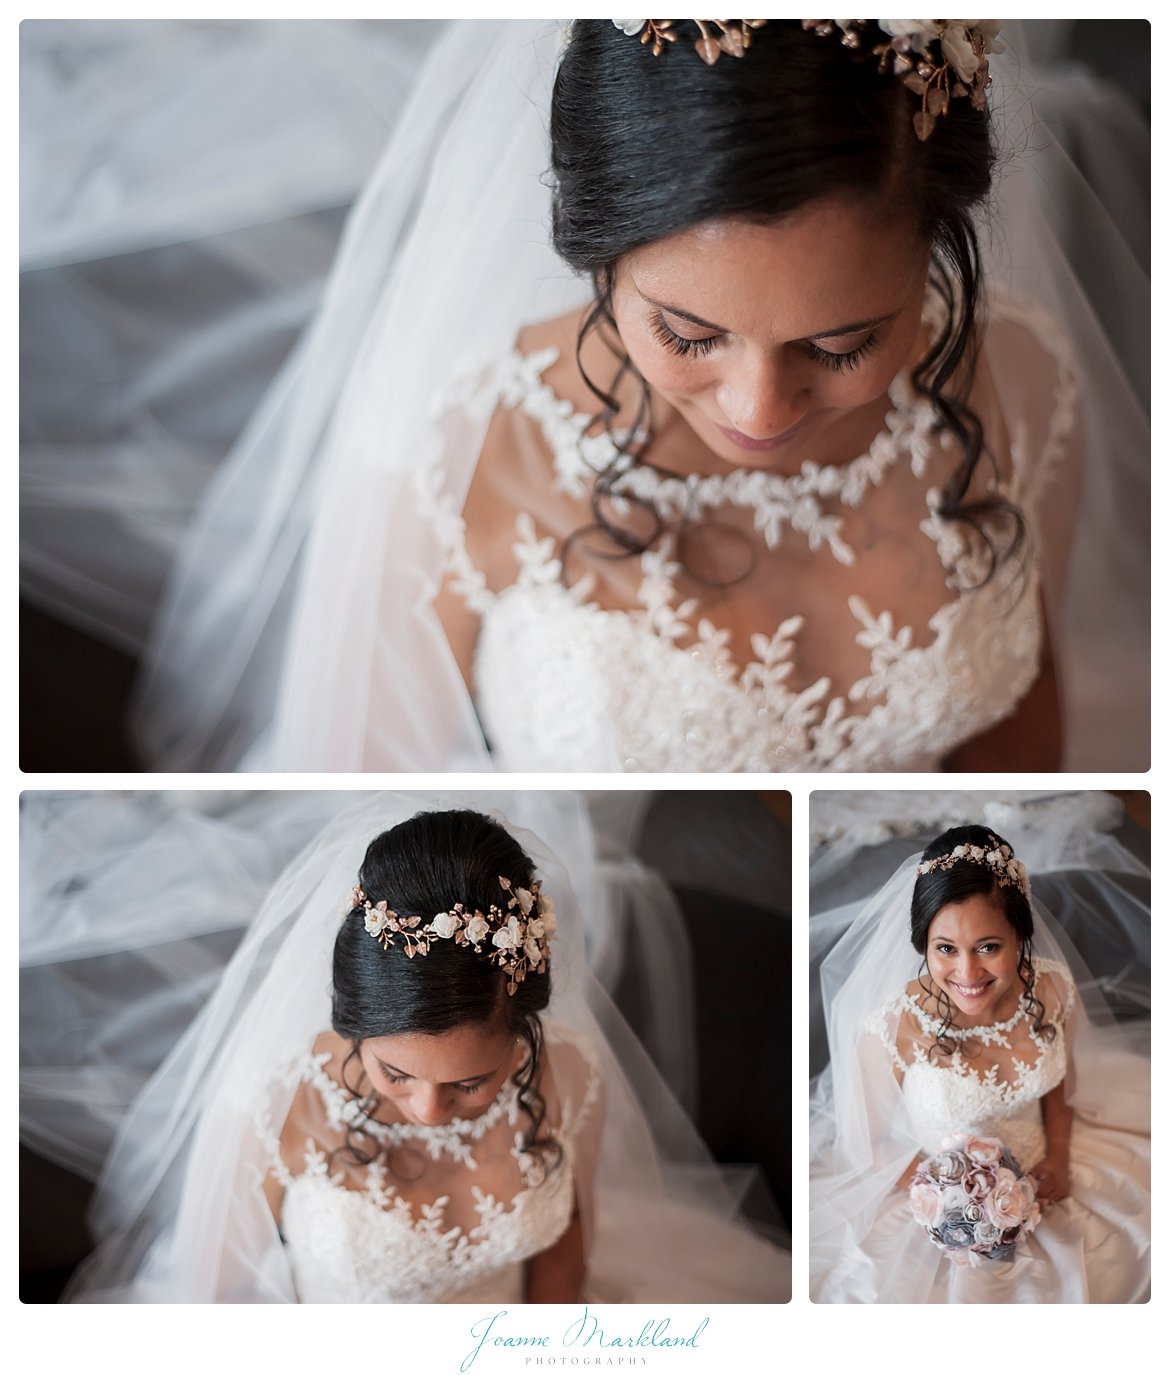 Val_de_vie_wedding_joanne_markland_photography_paarl-023